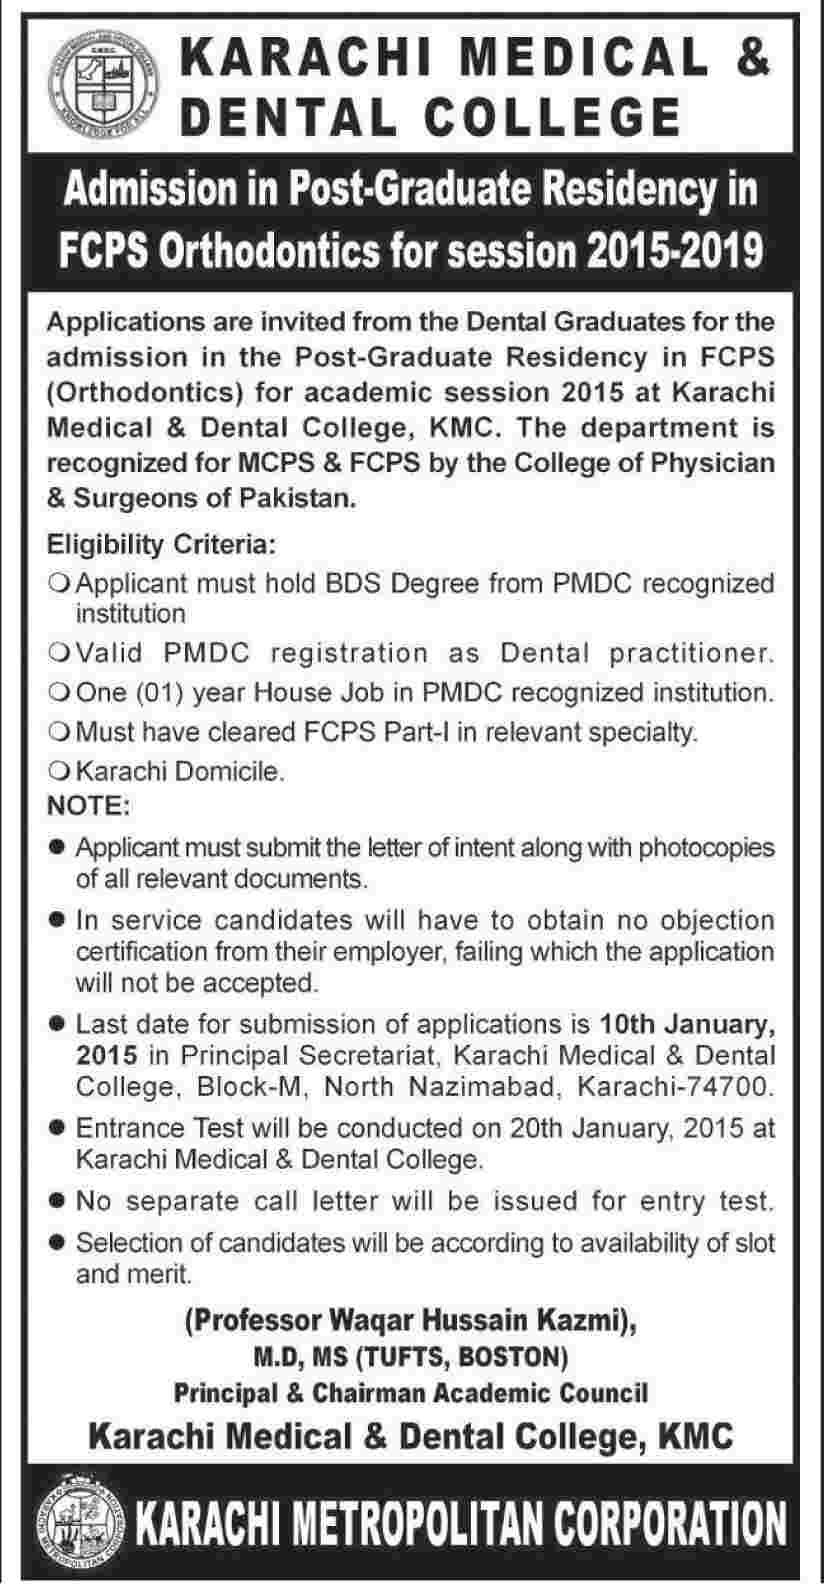 Karachi medical & Dental College Admission in Postgraduate Residency 2015